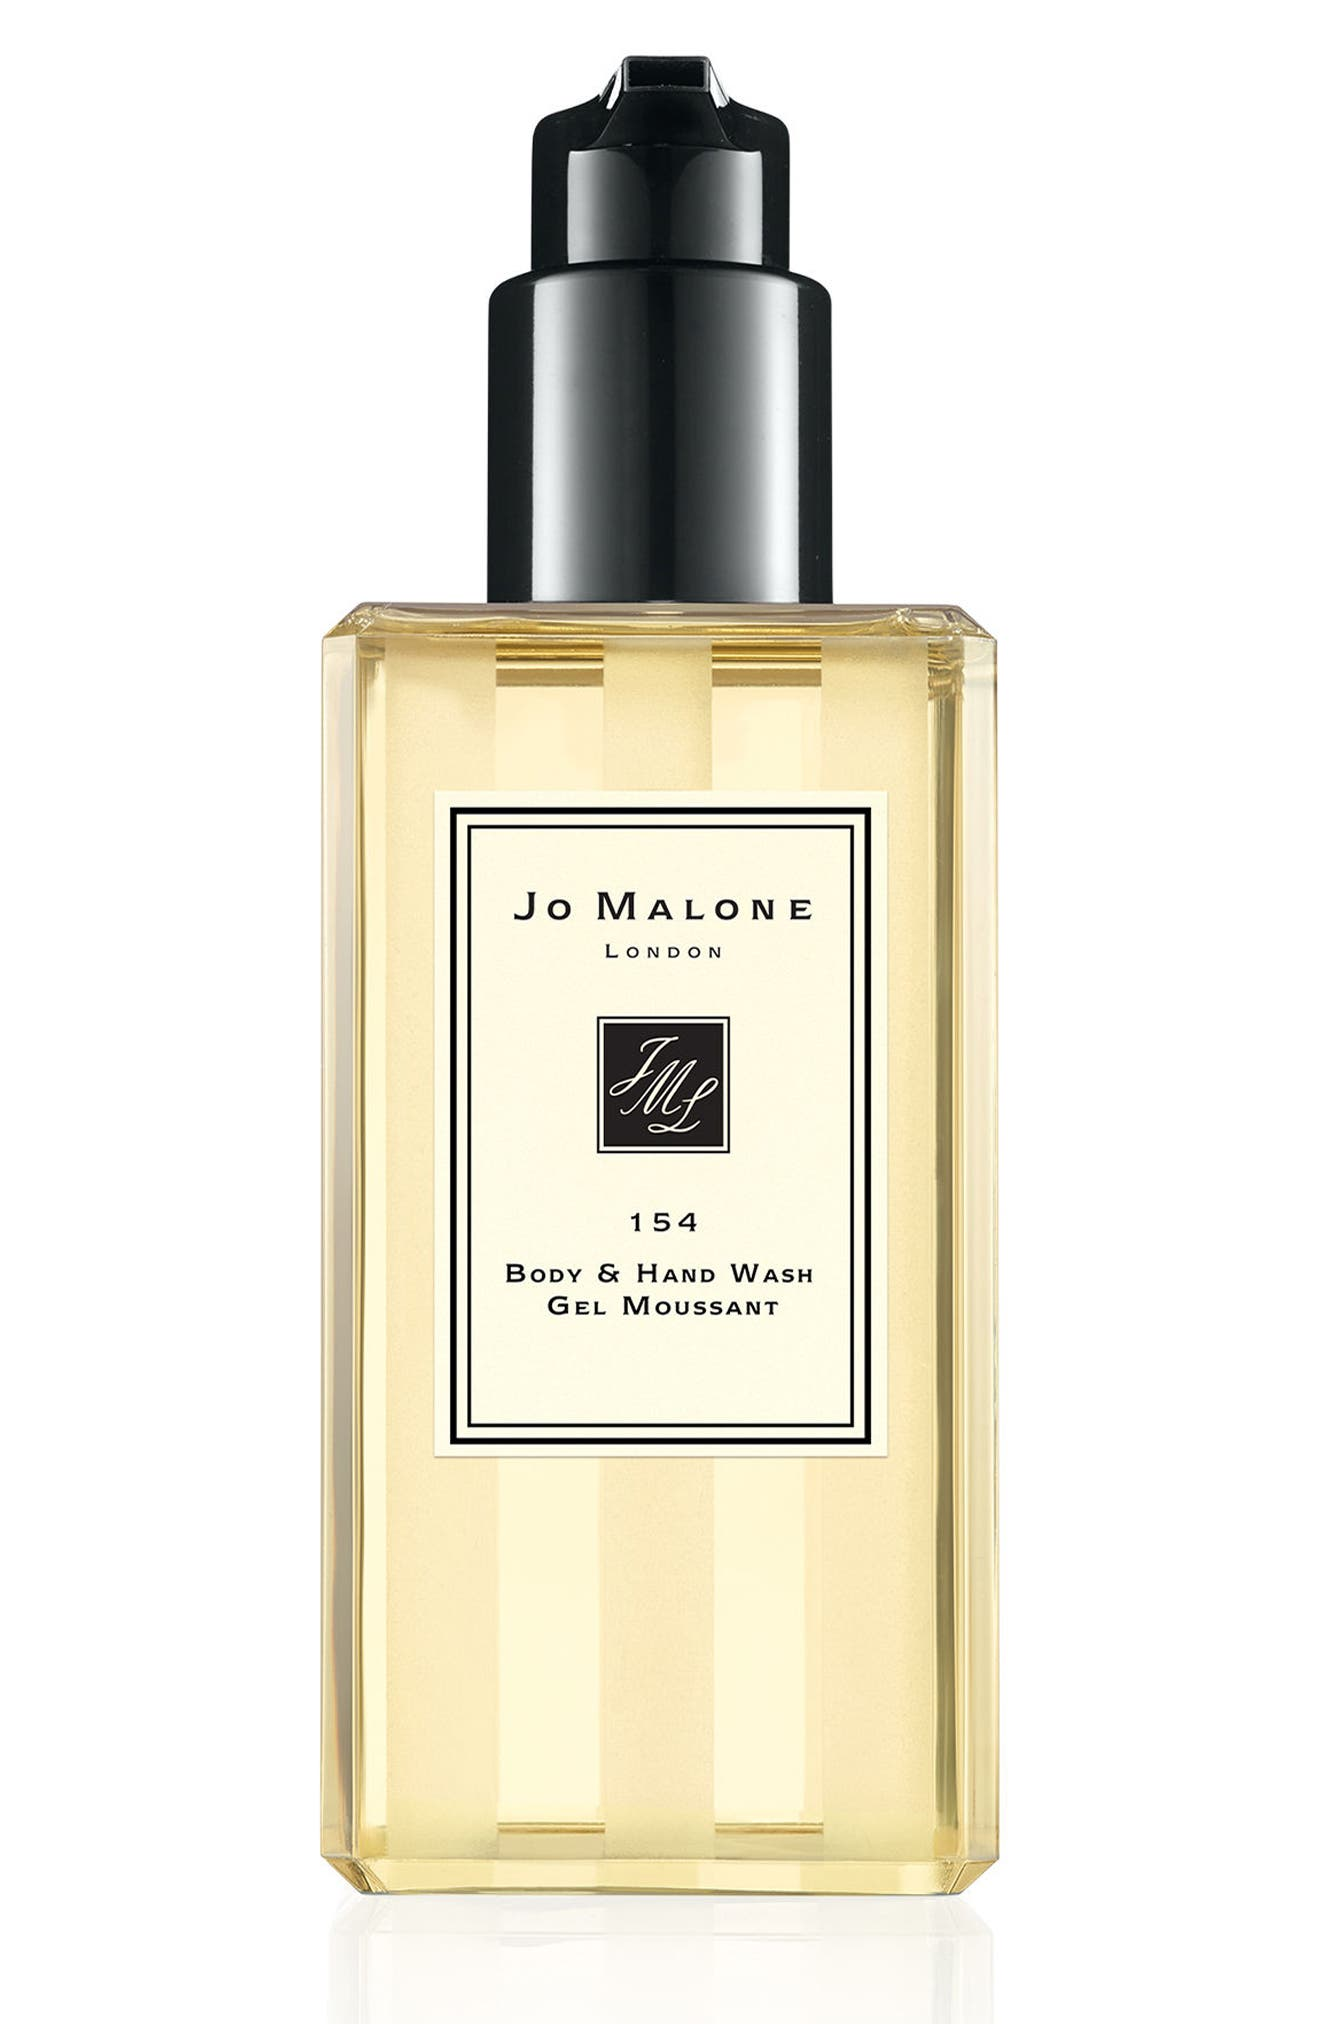 Jo Malone London™ 154 Body & Hand Wash